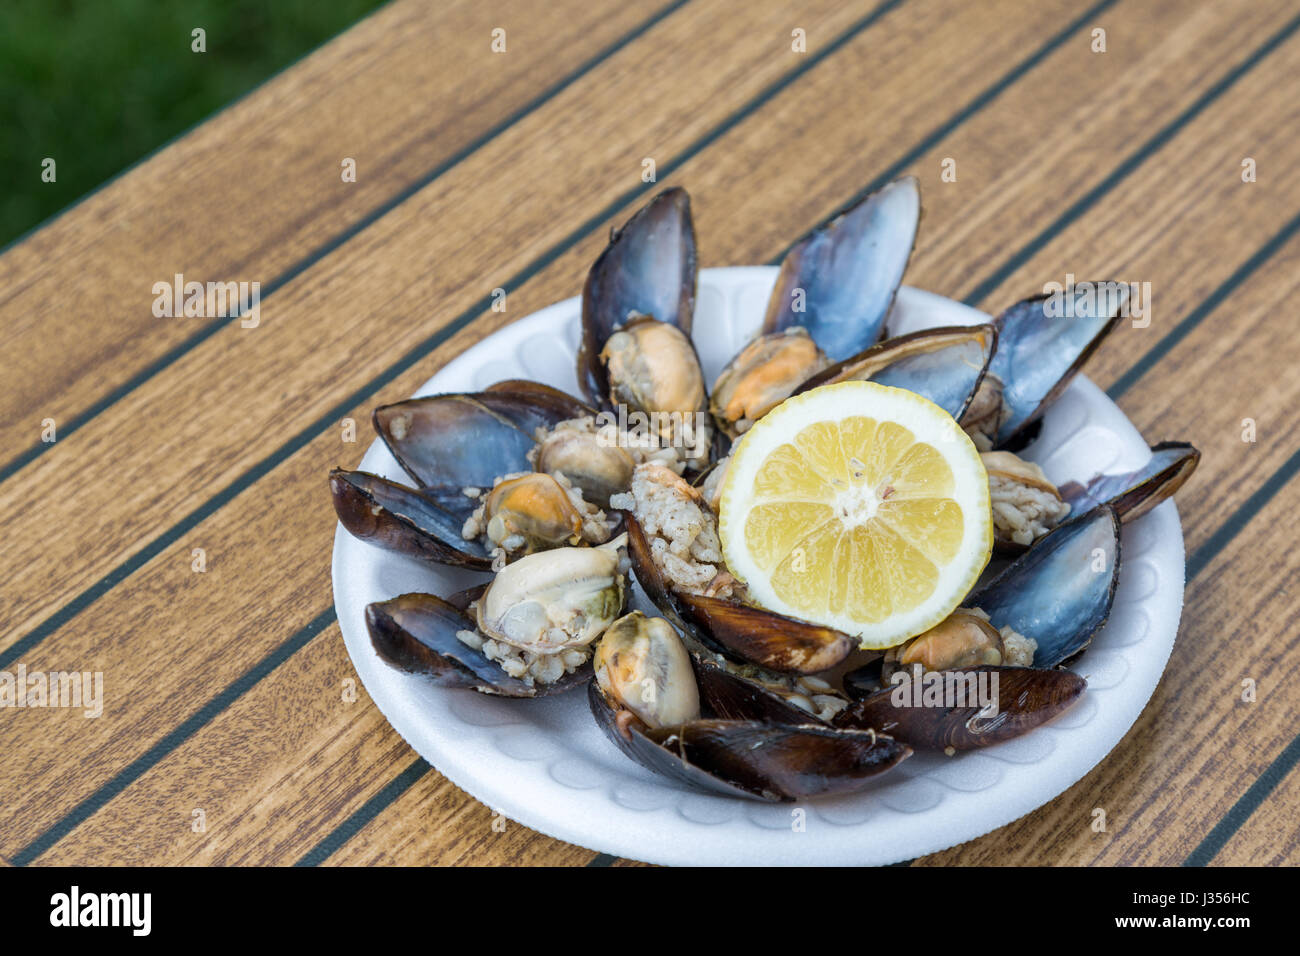 Stuffed mussels with lemon - Stock Image